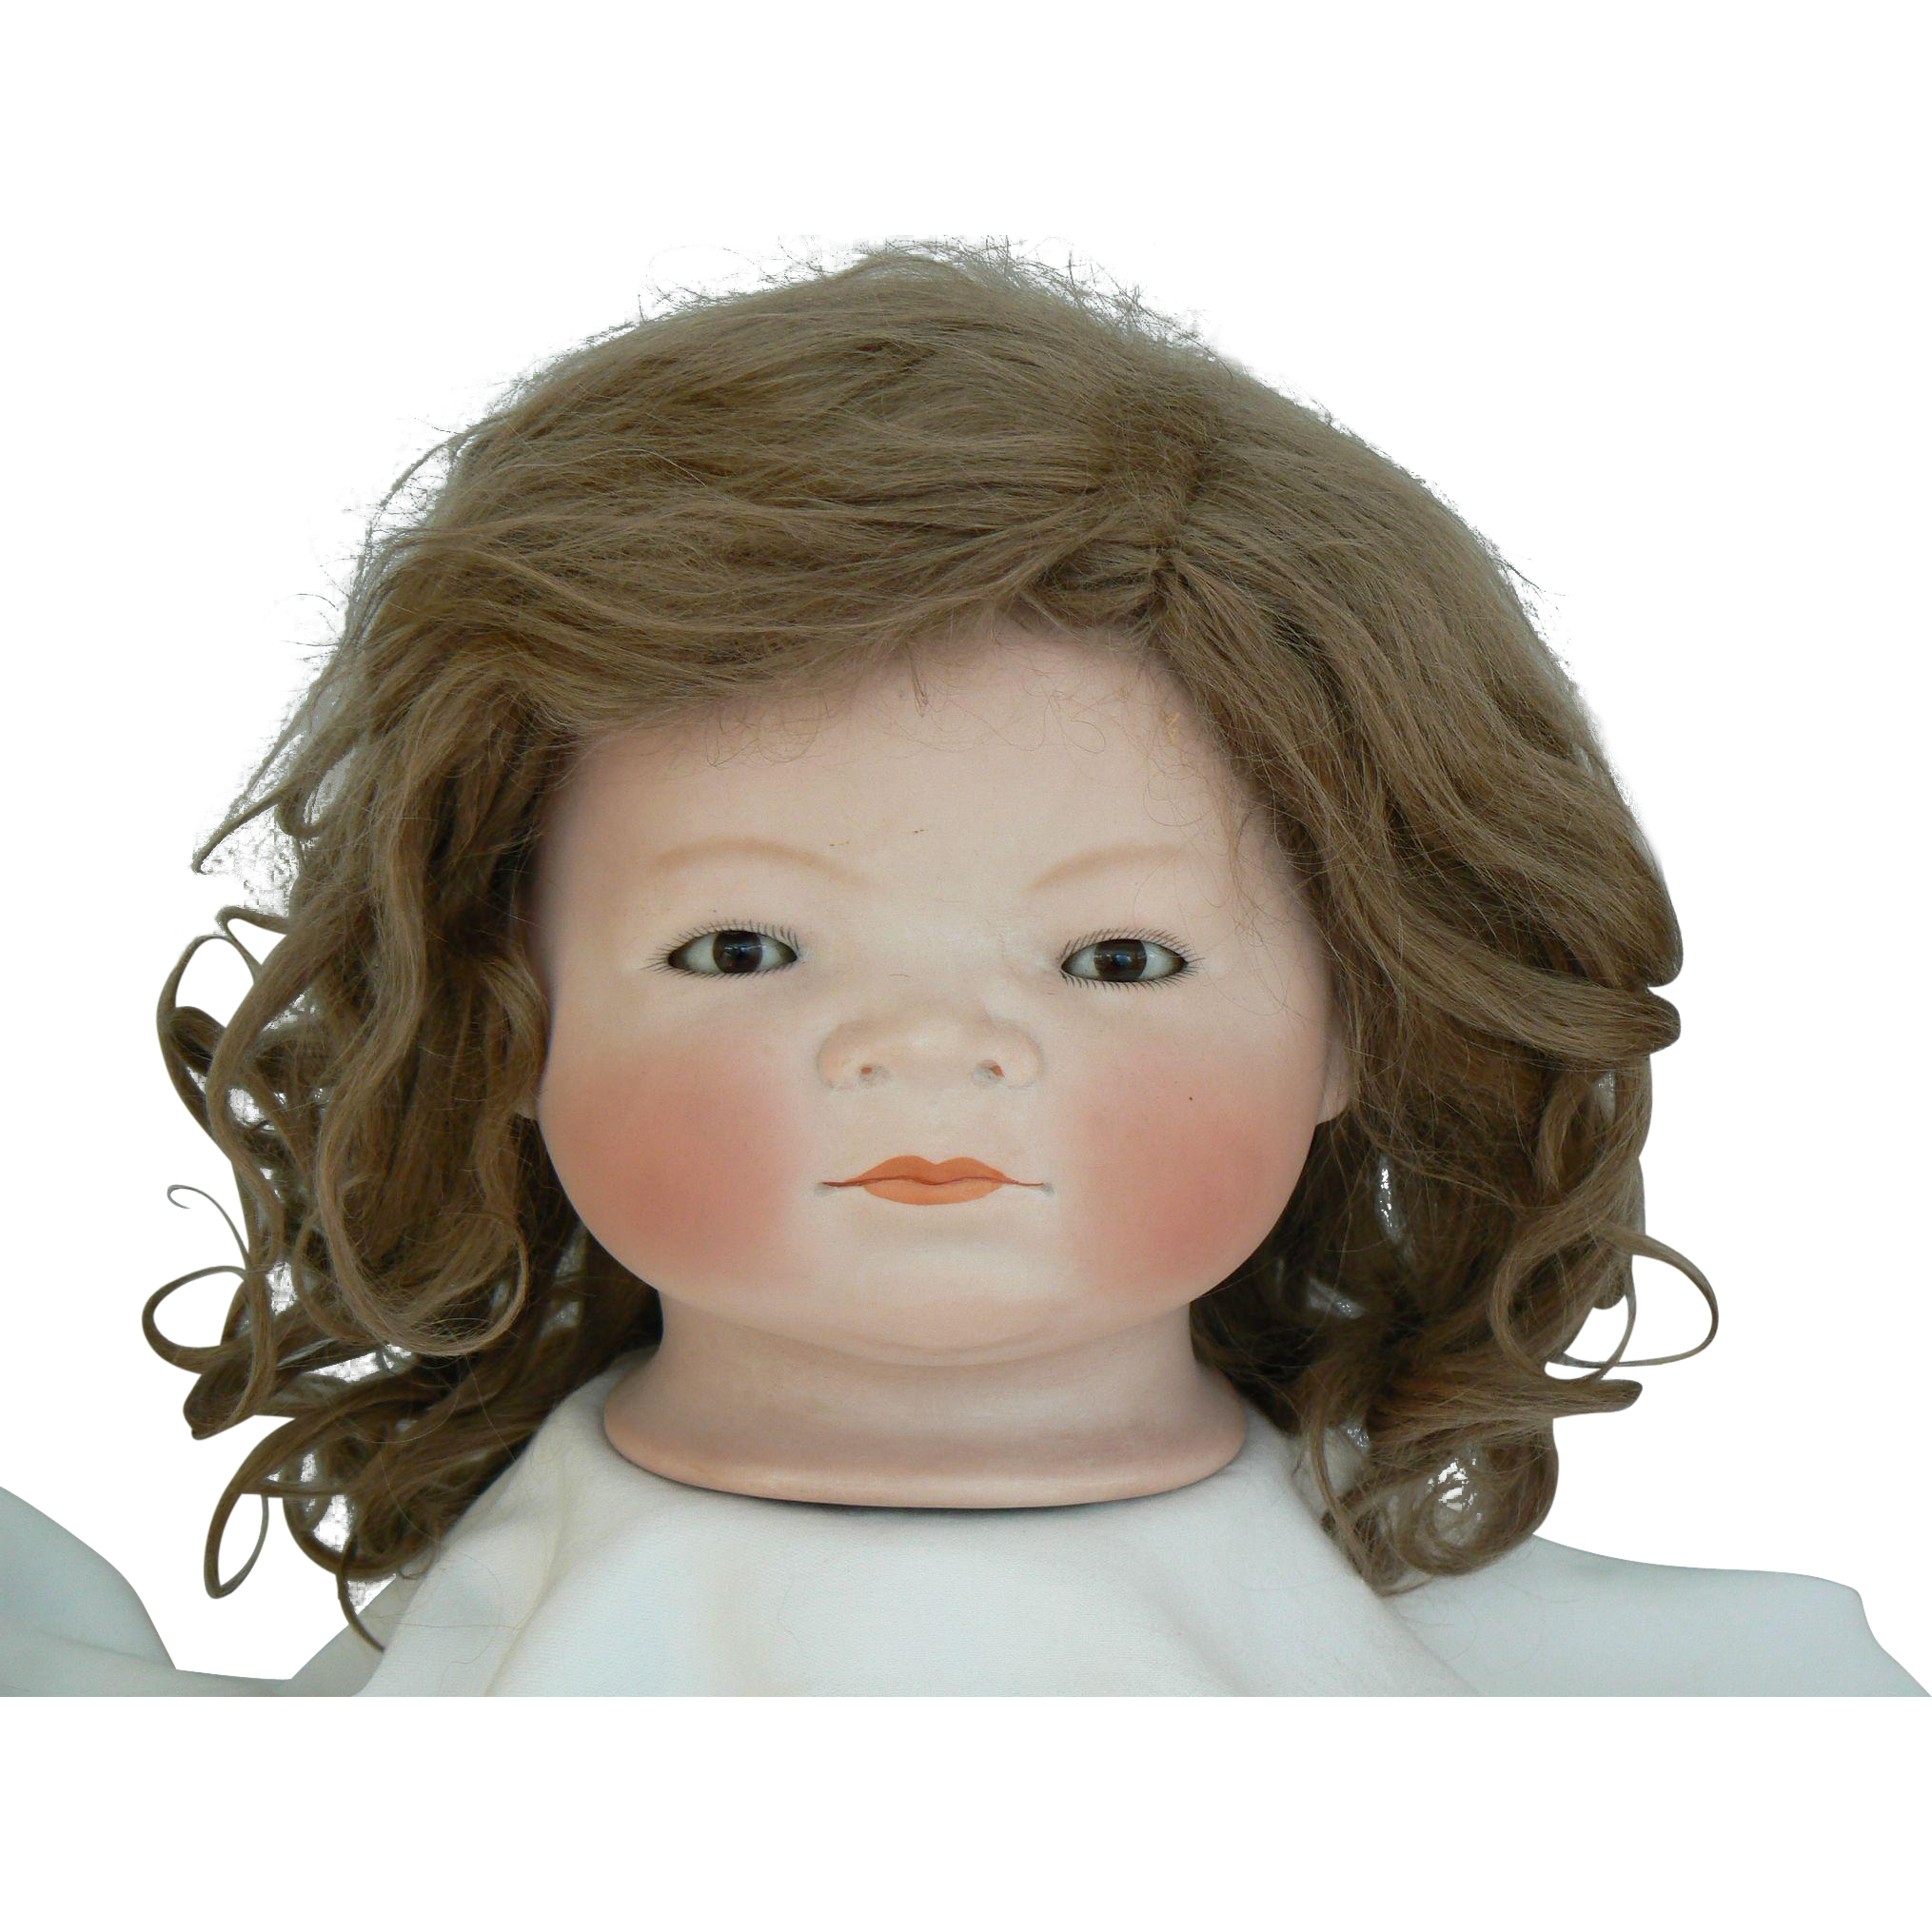 BIG antique doll wig mohair size 19 to 20 inch circumference OLD